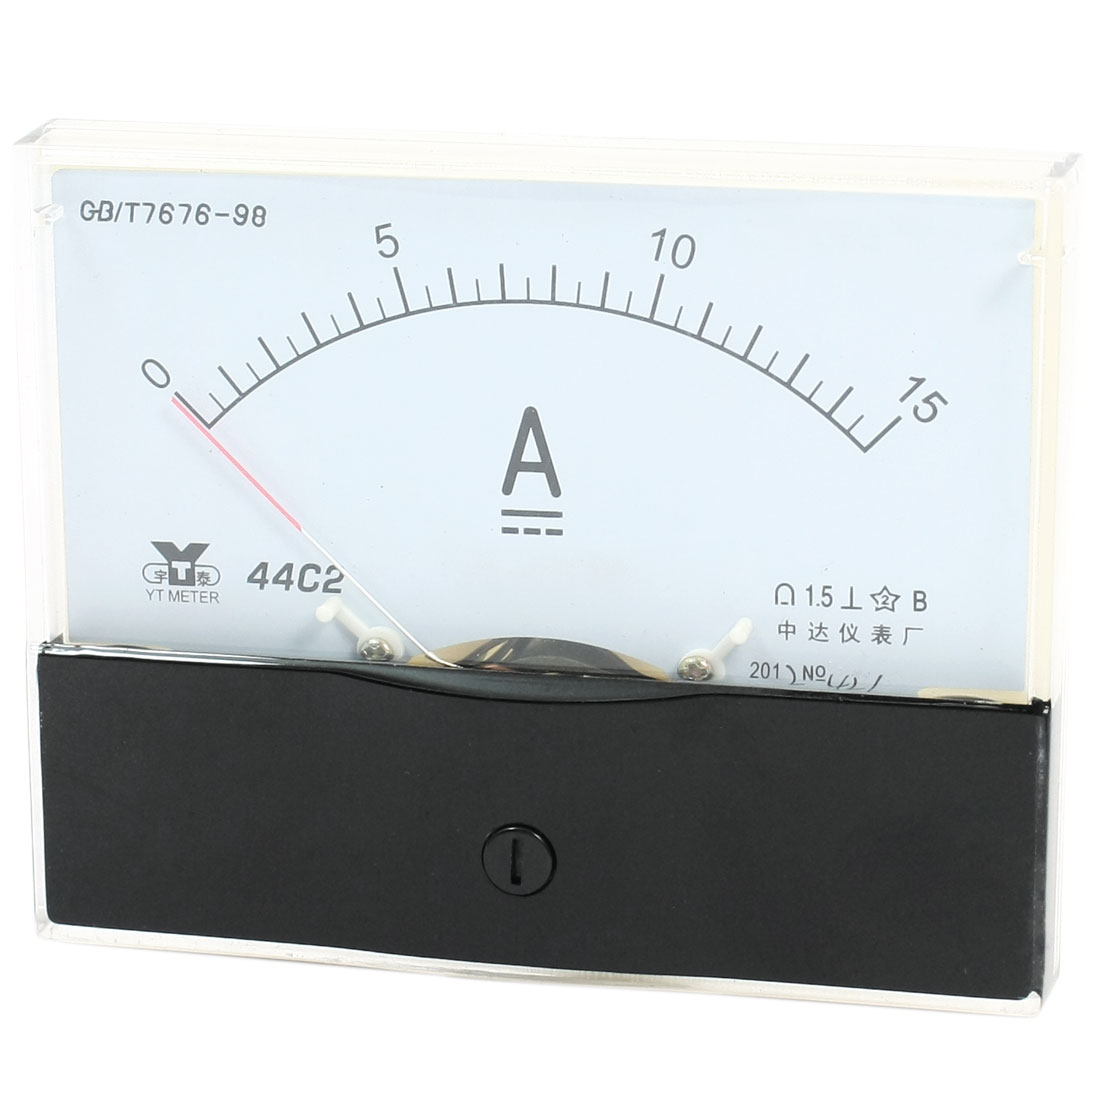 Measurement Tool Panel Mount Analog Ammeter Gauge DC 0 - 15A Measuring Range 44C2